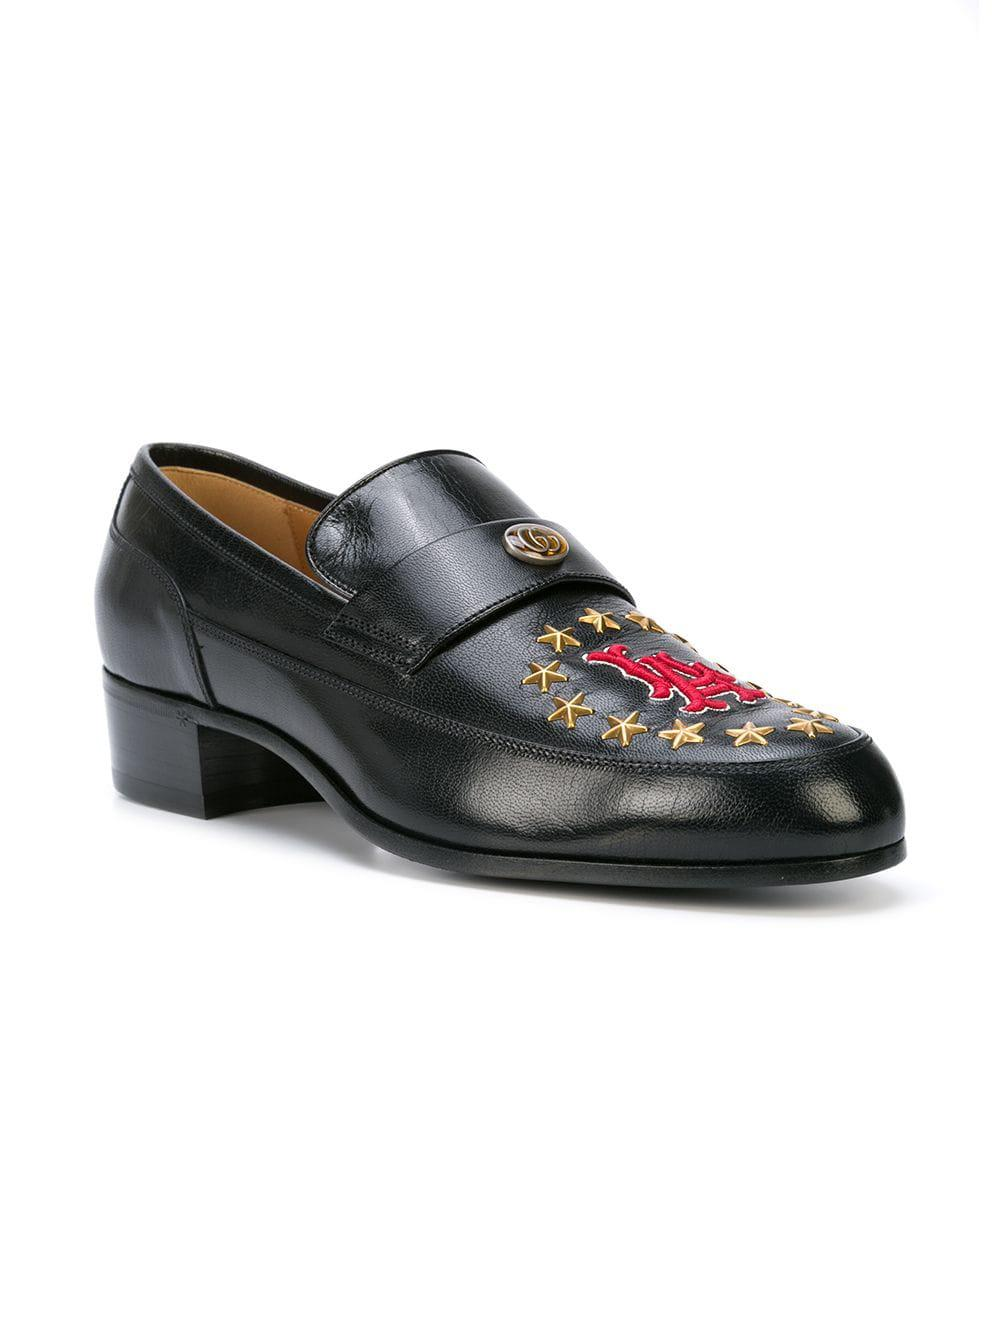 693b98d73db Lyst - Gucci Leather Loafer With La Patch in Black for Men